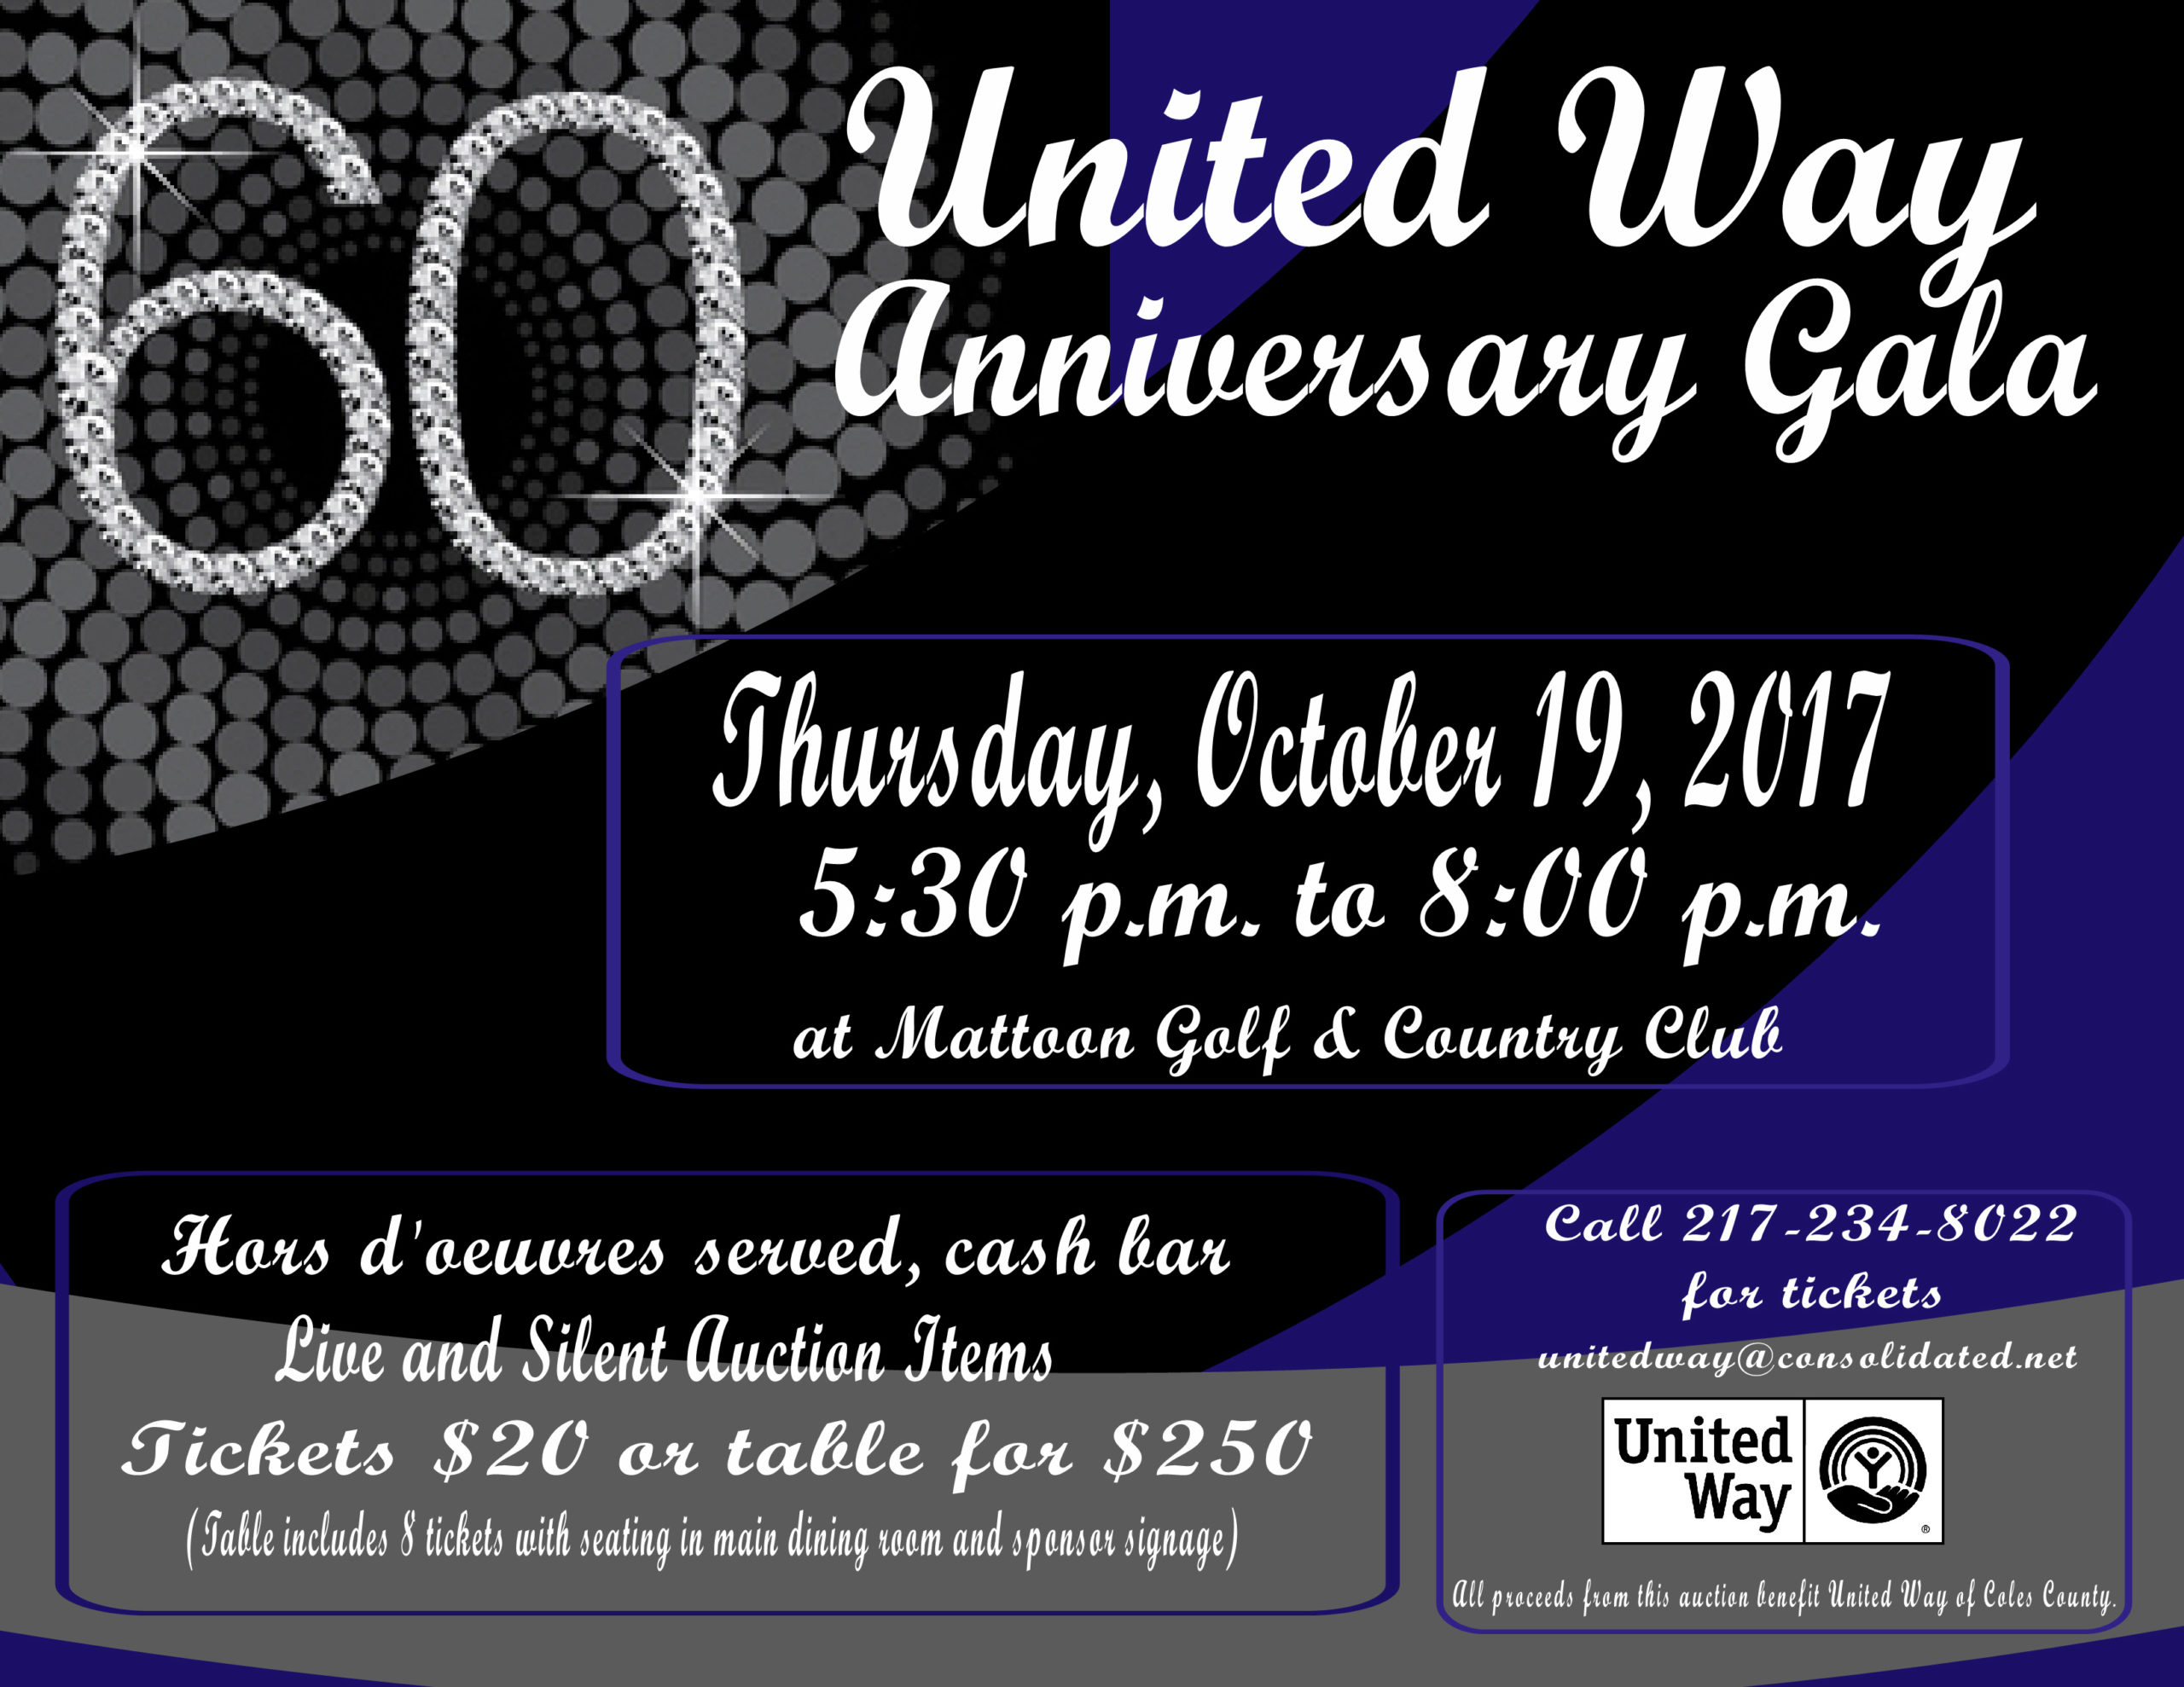 United Way of Coles County's 60th Anniversary Gala